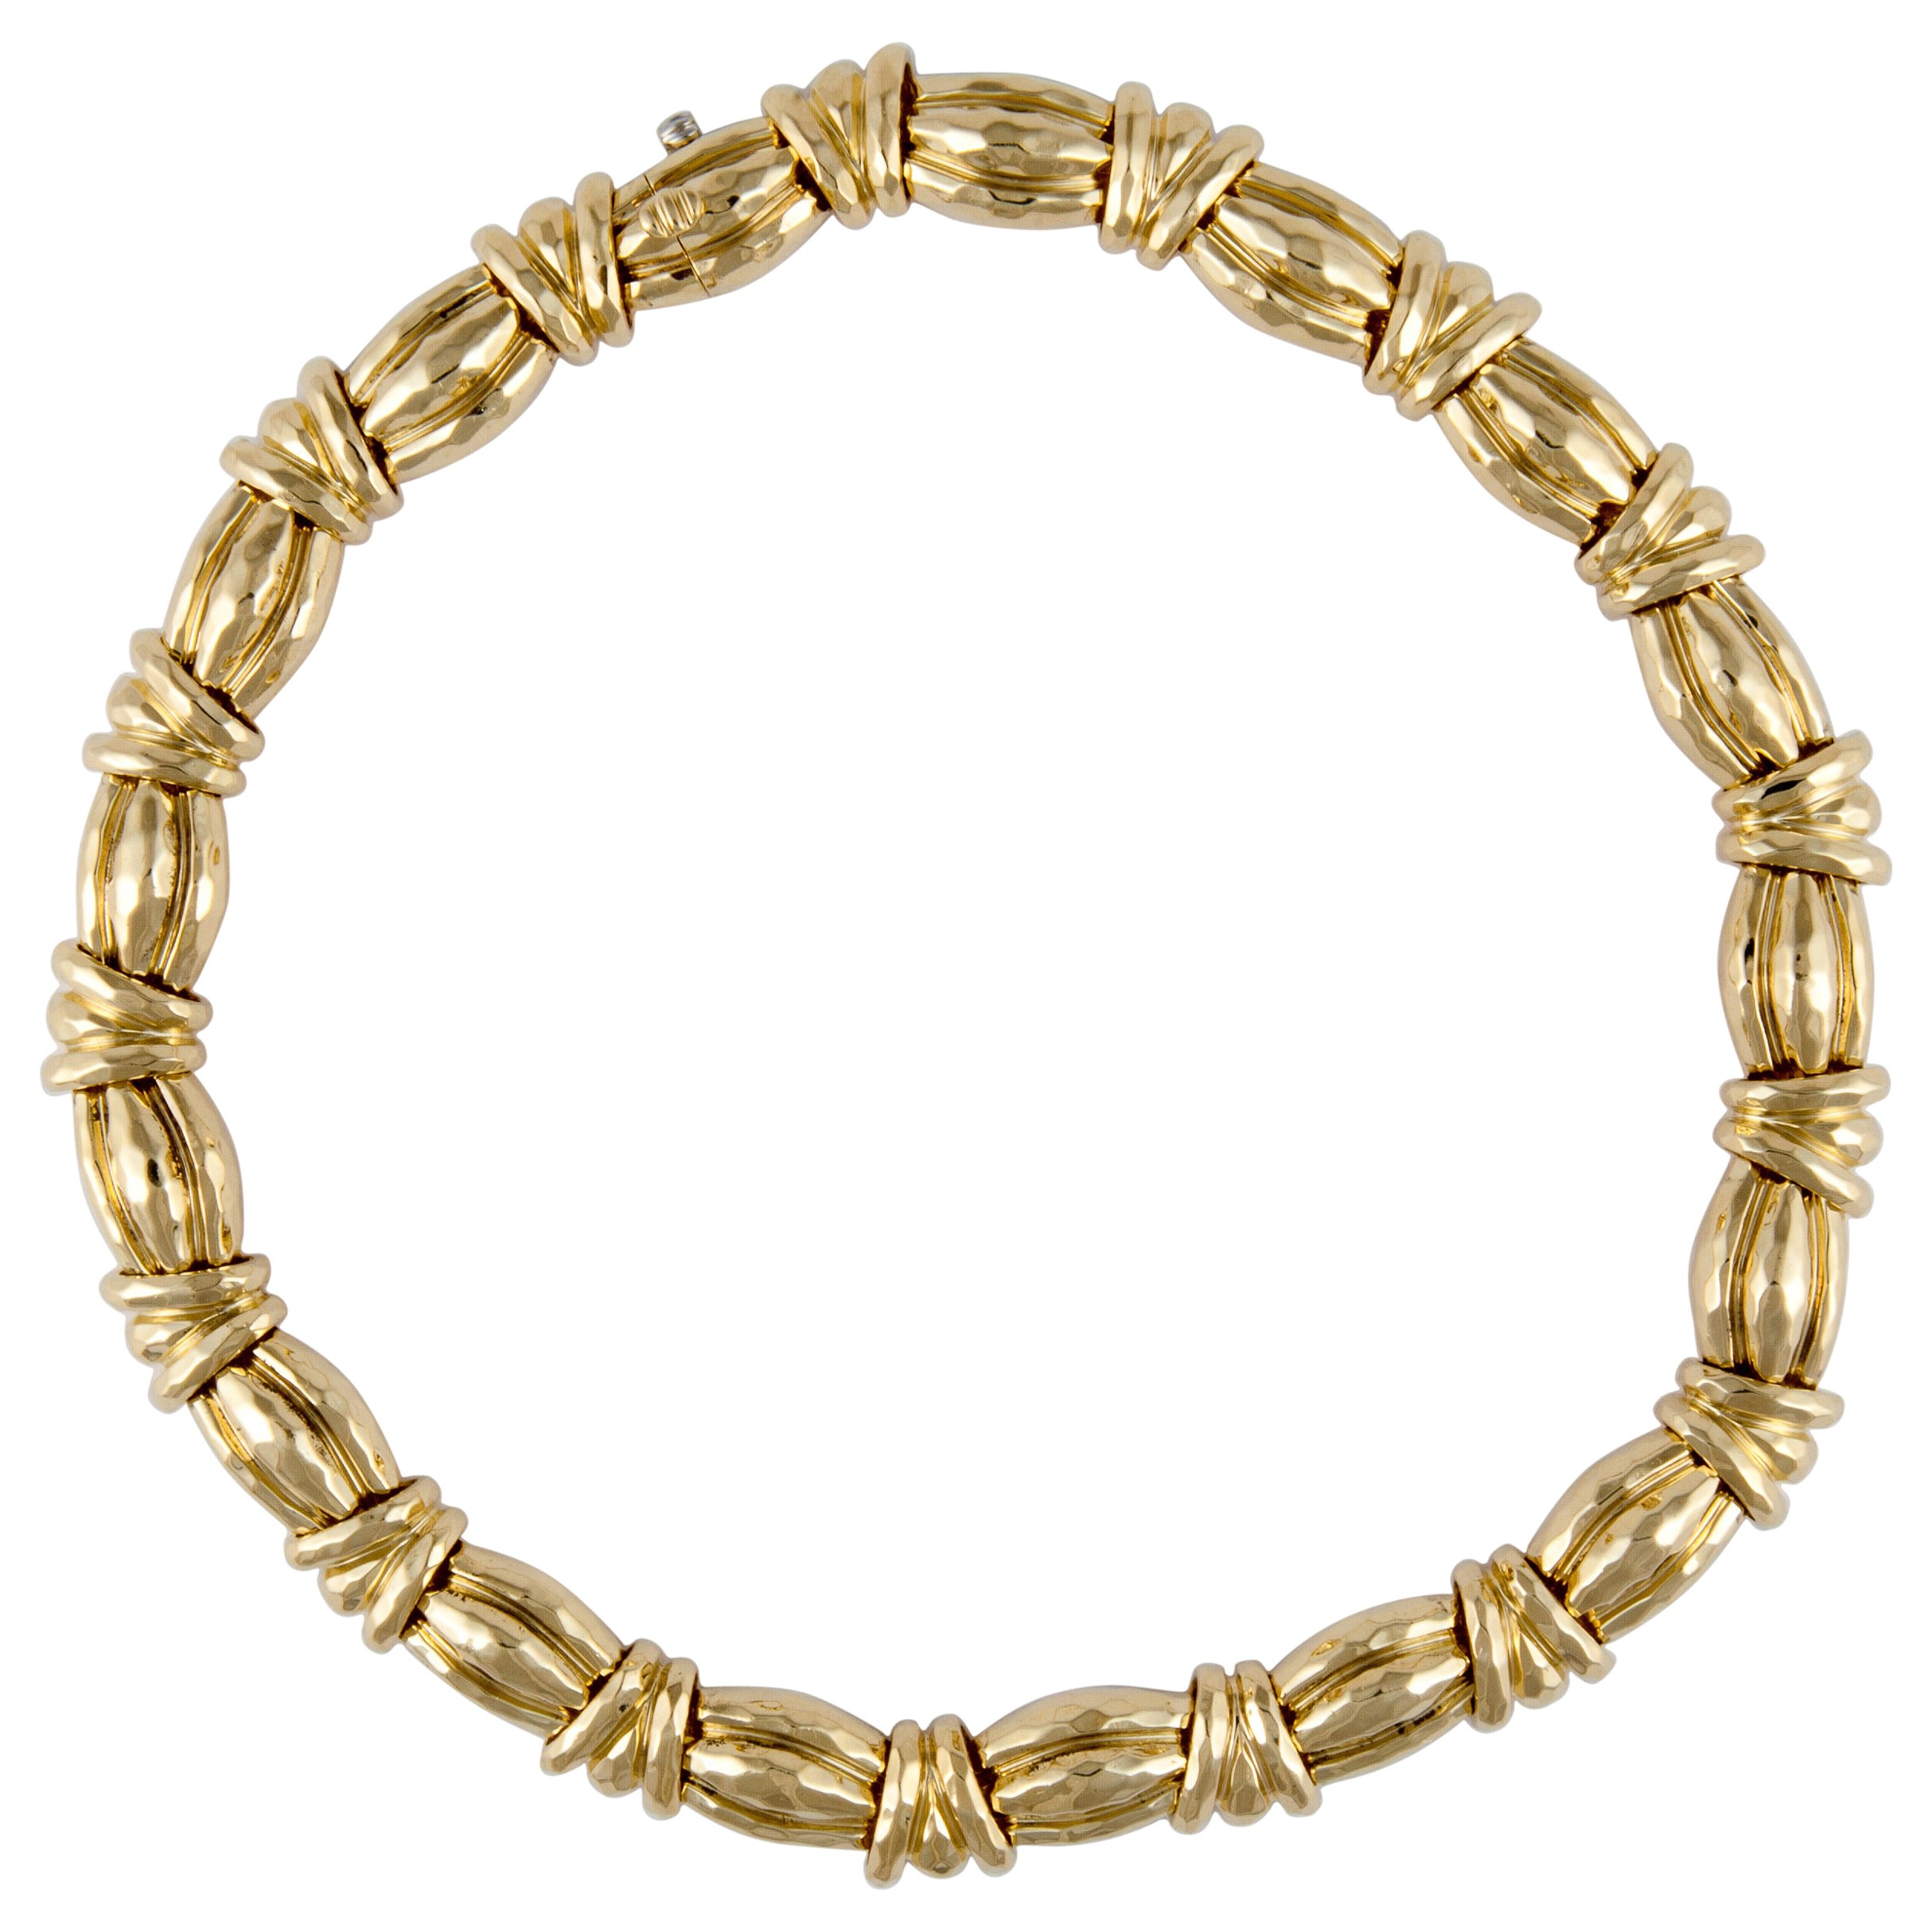 Henry Dunay 18K Yellow Gold Necklace